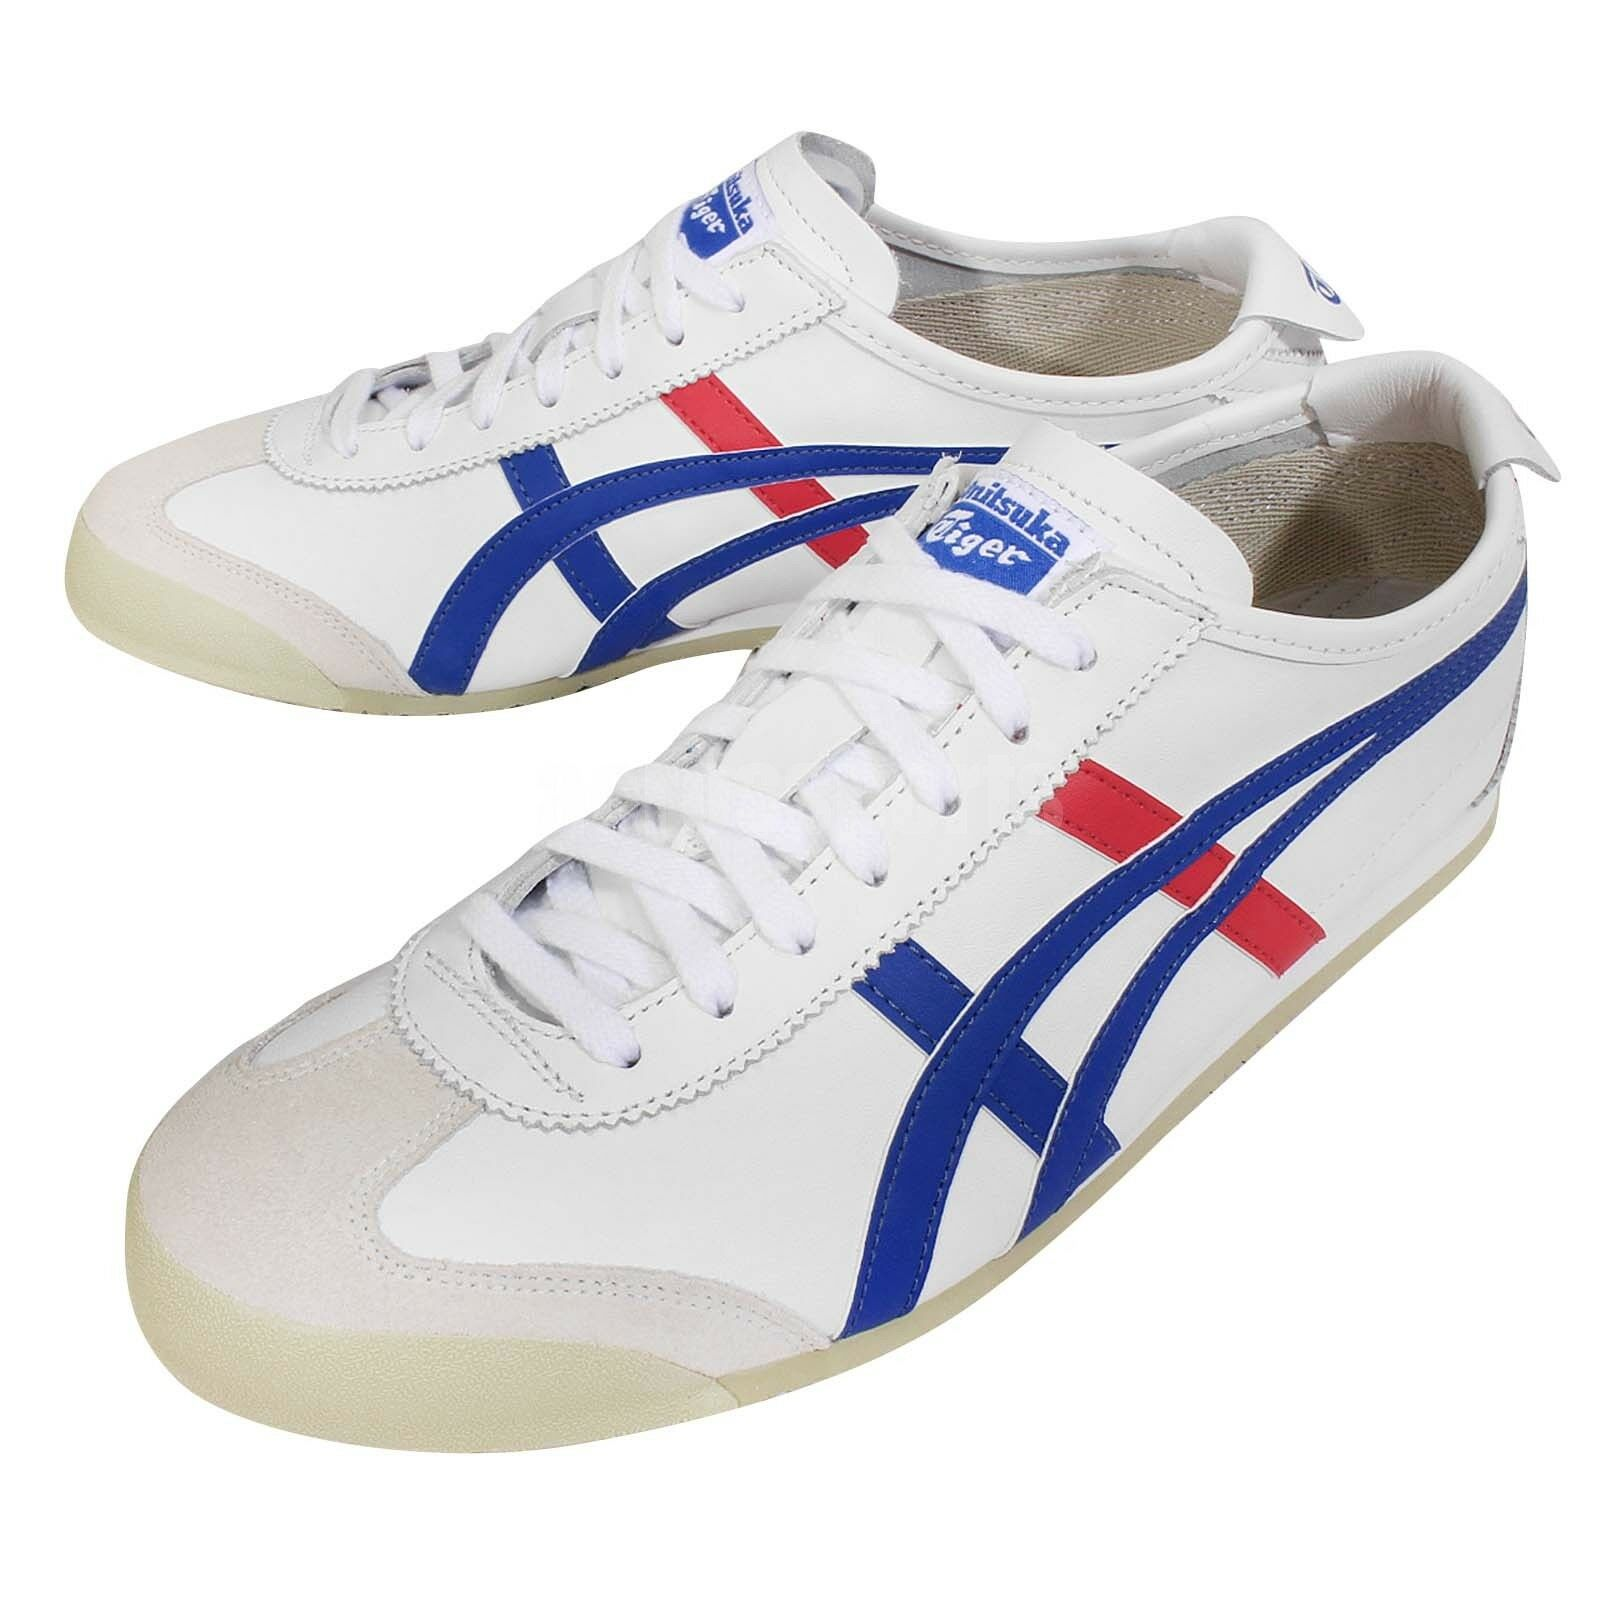 Asics Onitsuka Tiger Mexico 66 OT Men Women Shoes Sneakers DL408-0146 The latest discount shoes for men and women